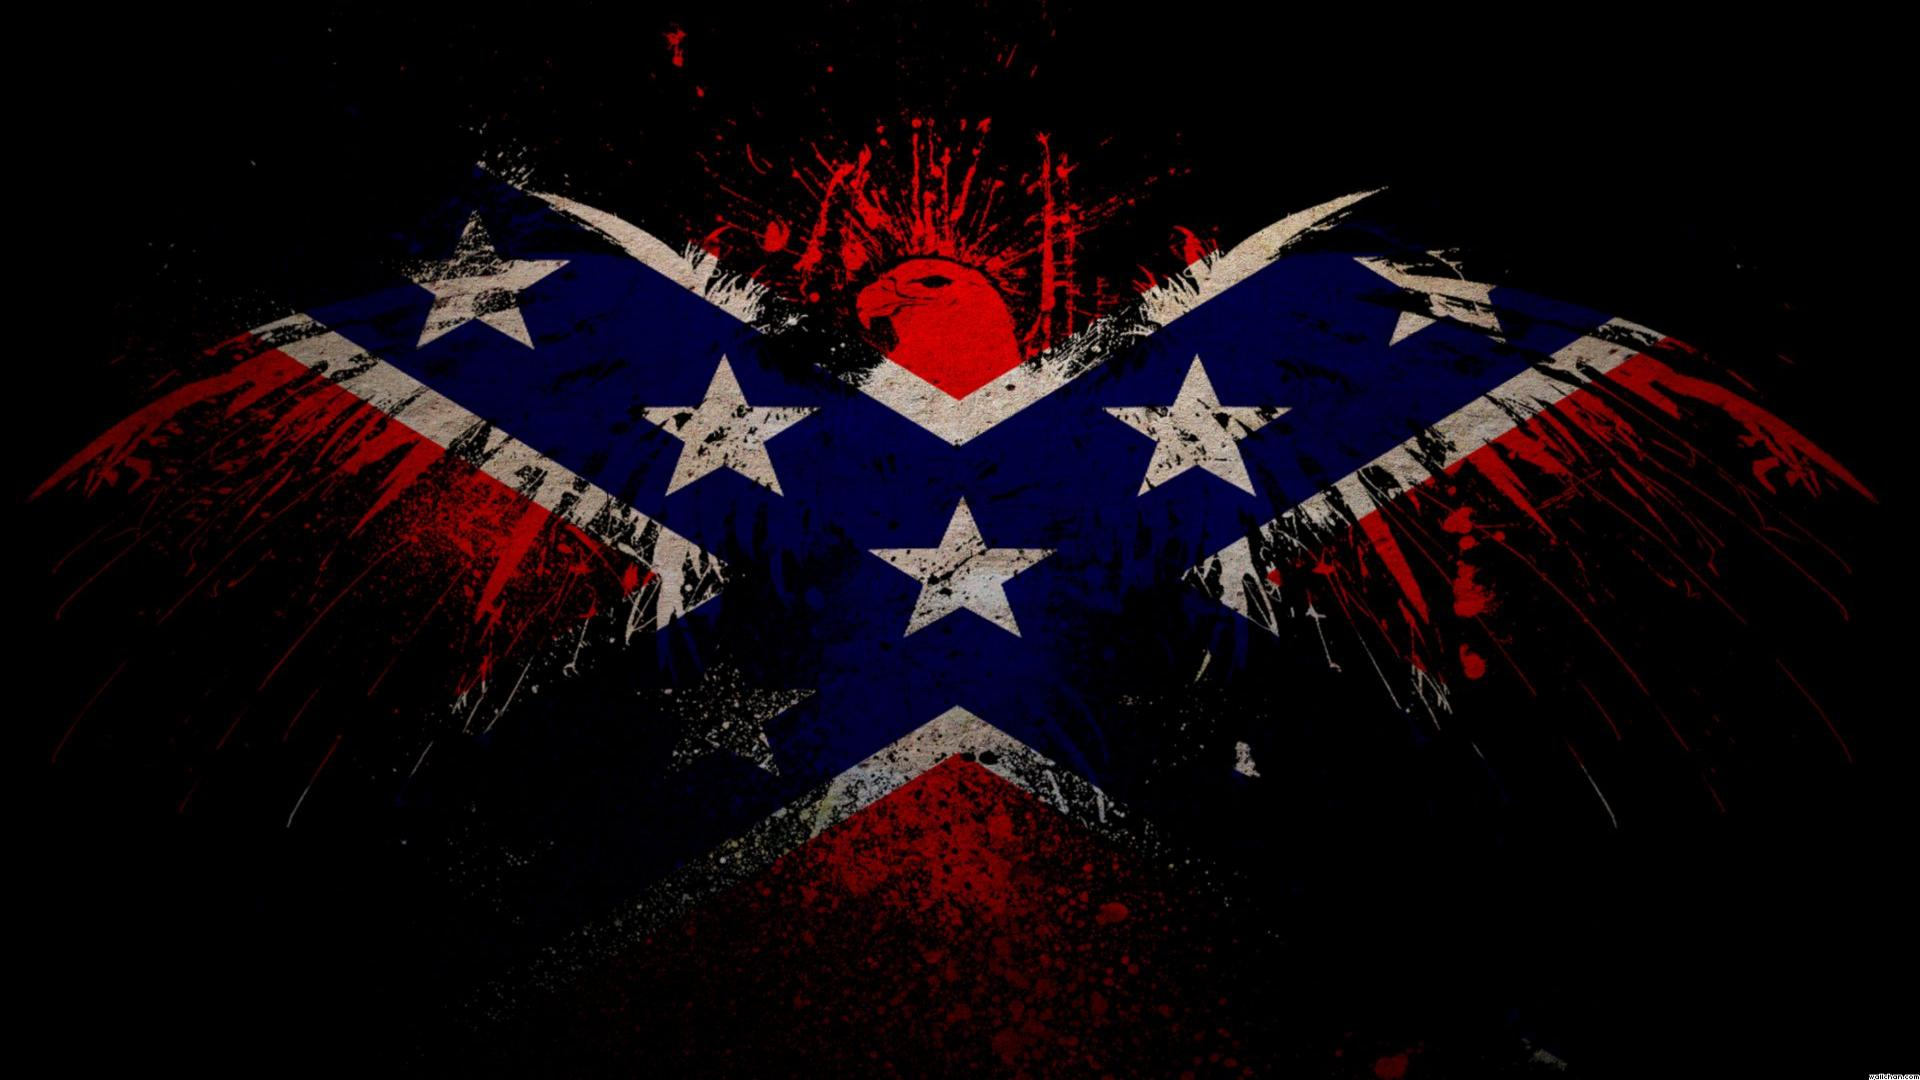 Confederate States of America Flag Wallpaper   MixHD wallpapers 1920x1080